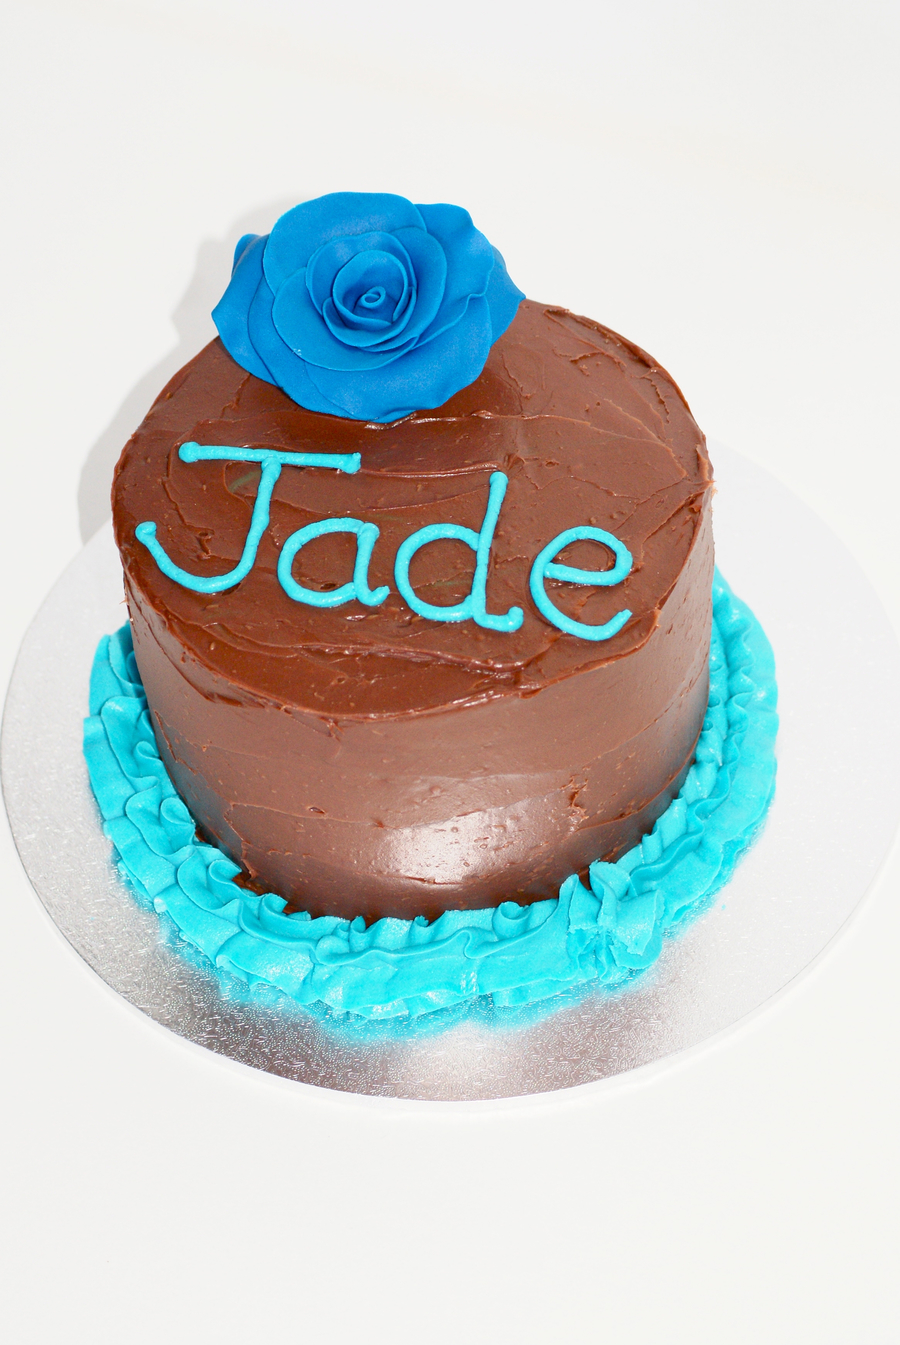 My Niece Requested Simple Chocolate With Blue This Is A Milk Choc Mud With Choc Ganache on Cake Central